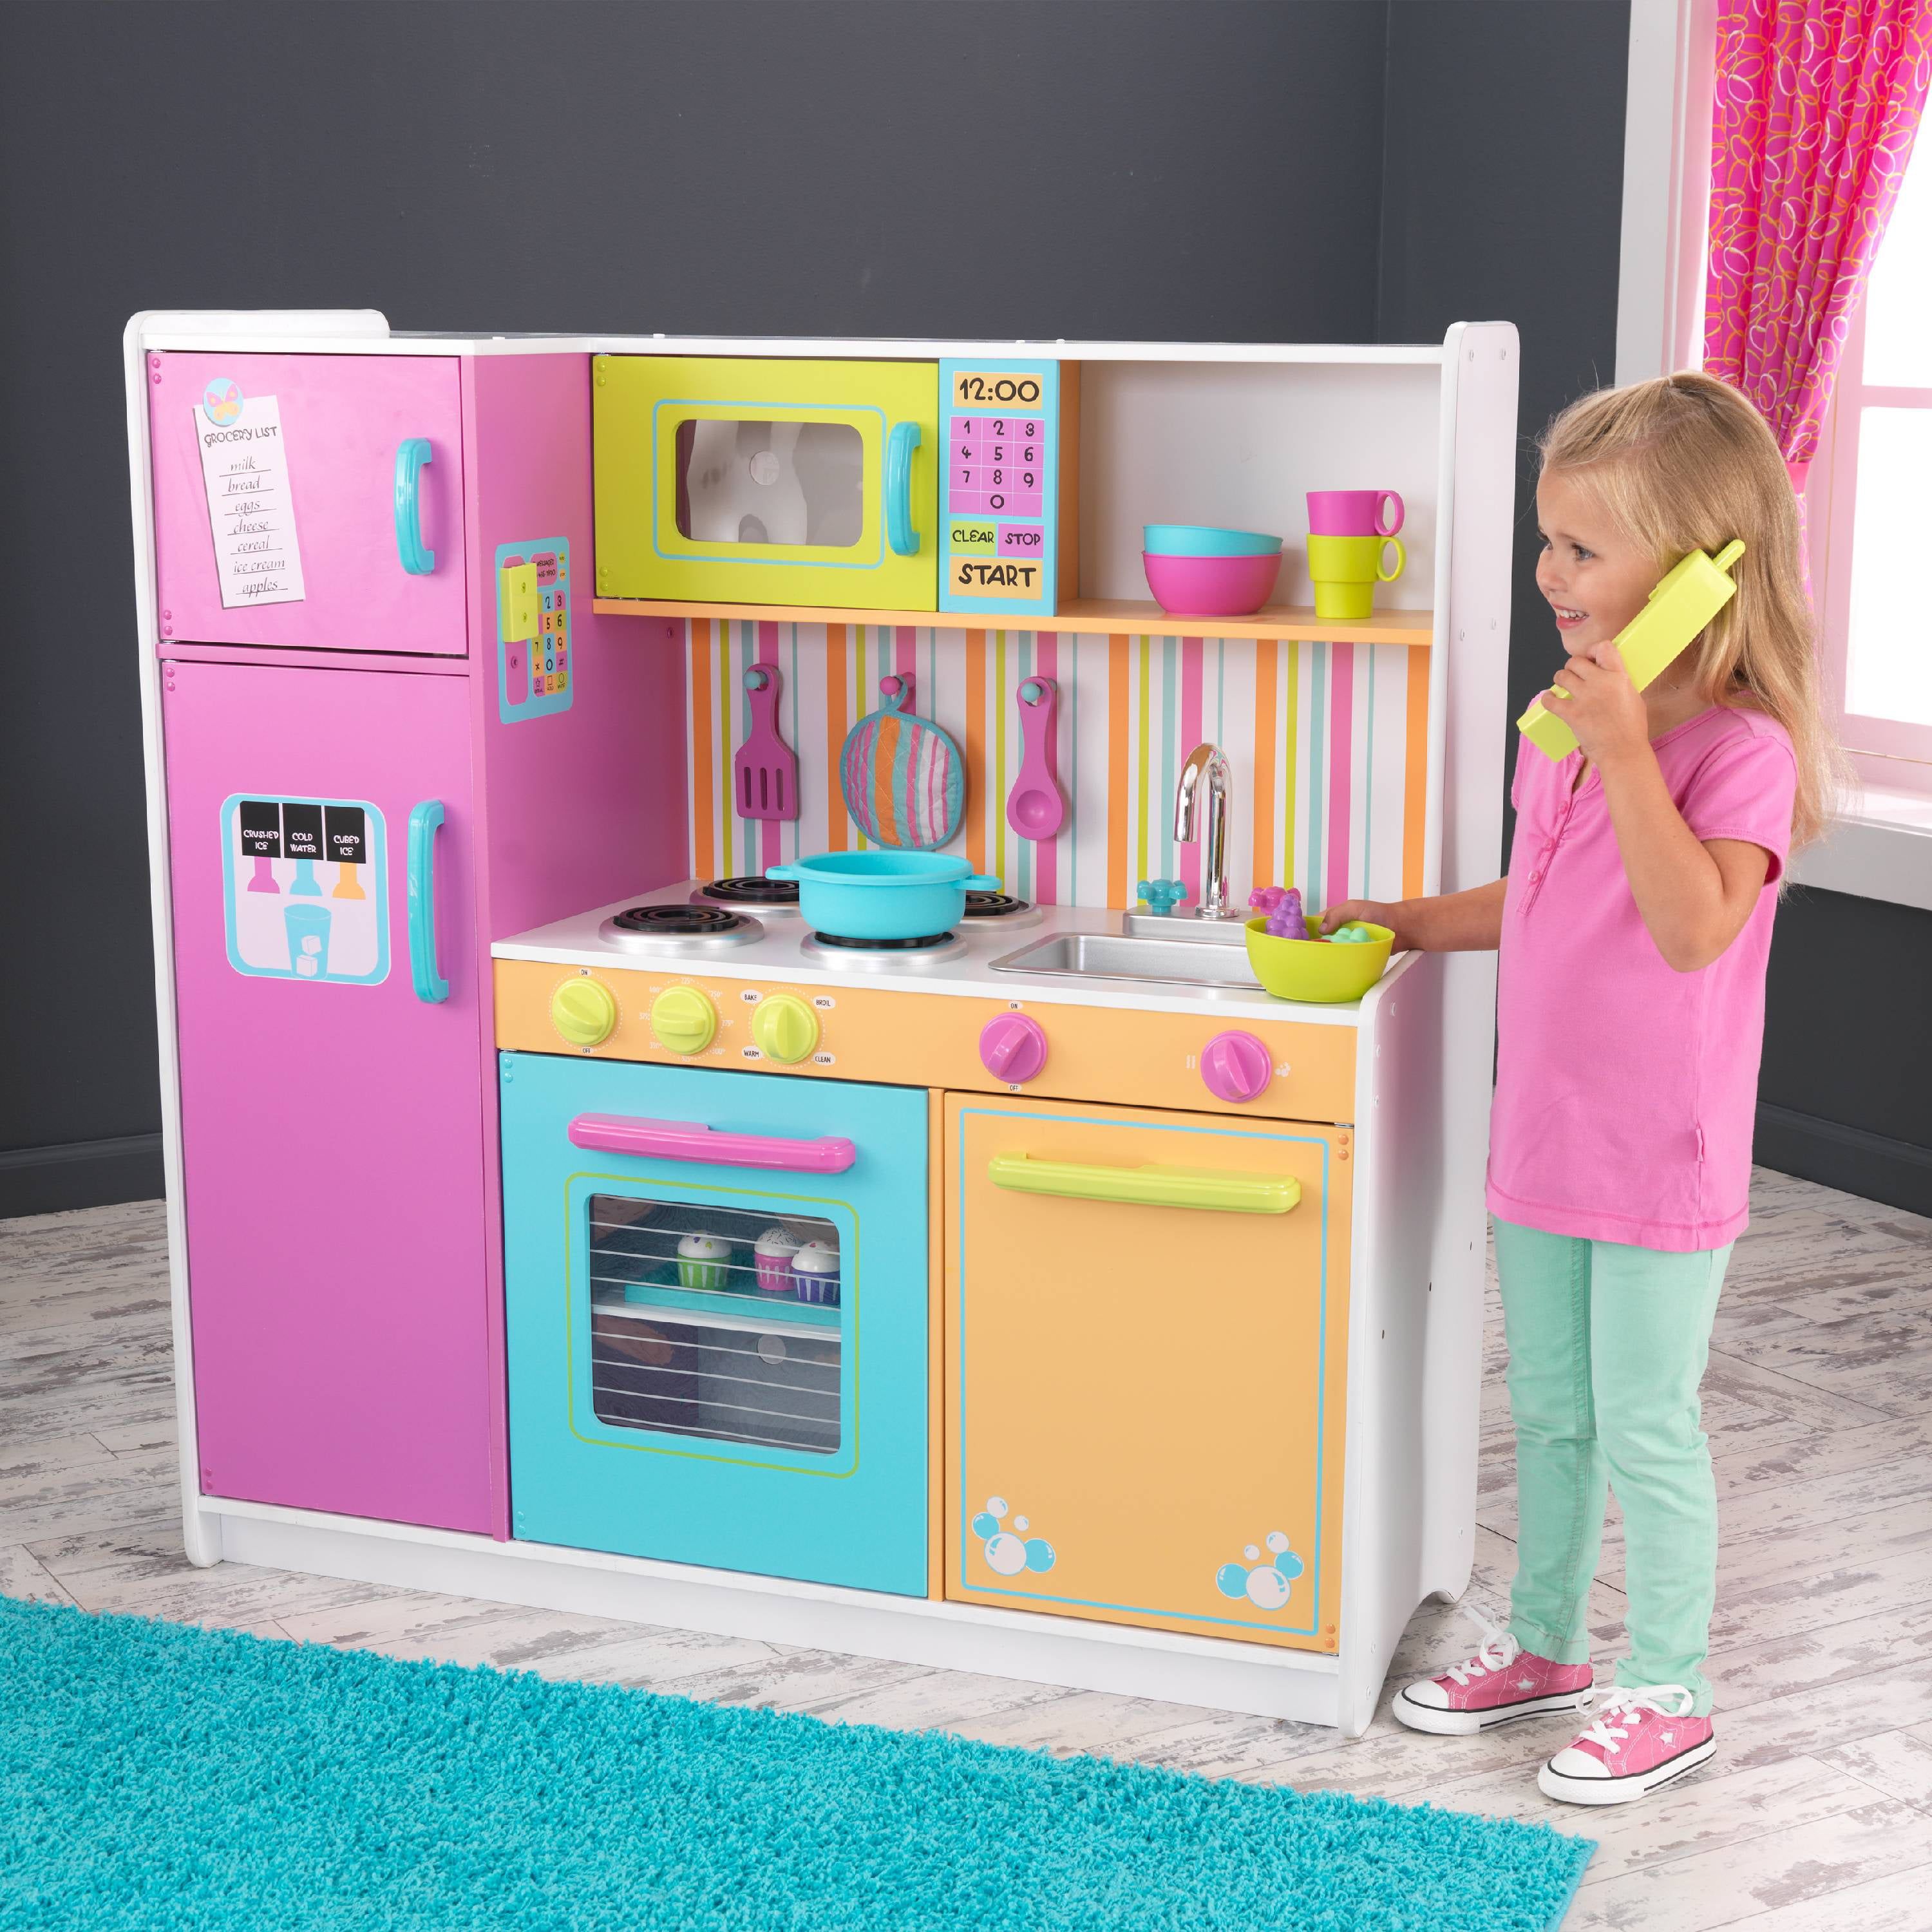 KidKraft Deluxe Big and Bright Kitchen - Walmart.com